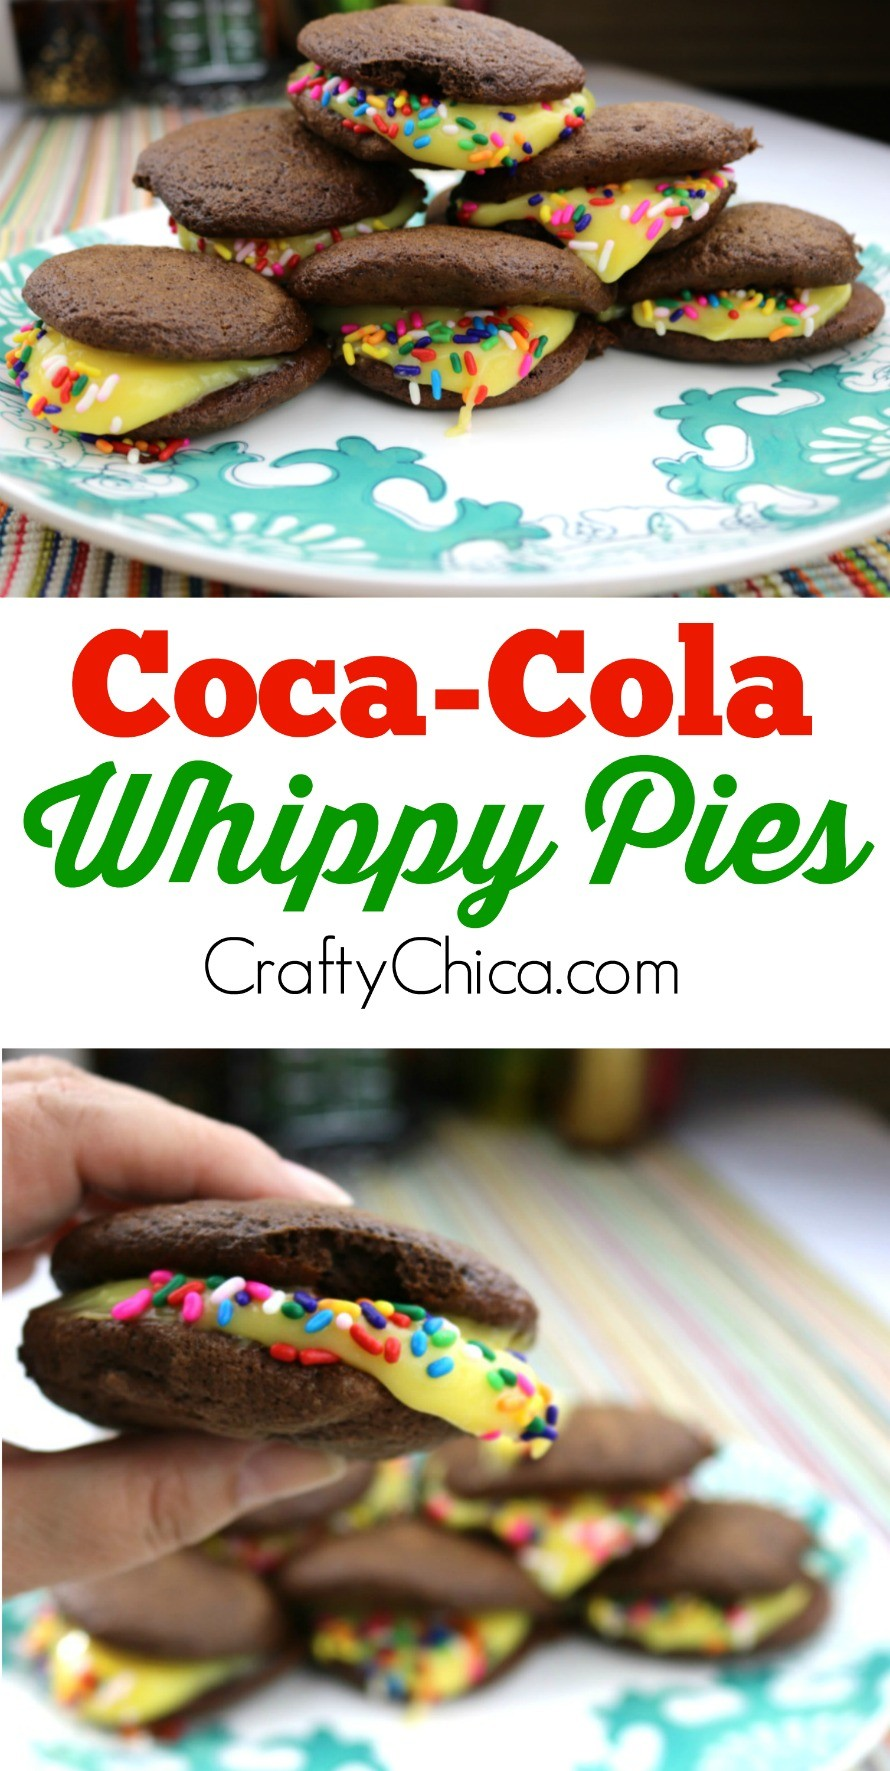 coca-cola-whippy-pies